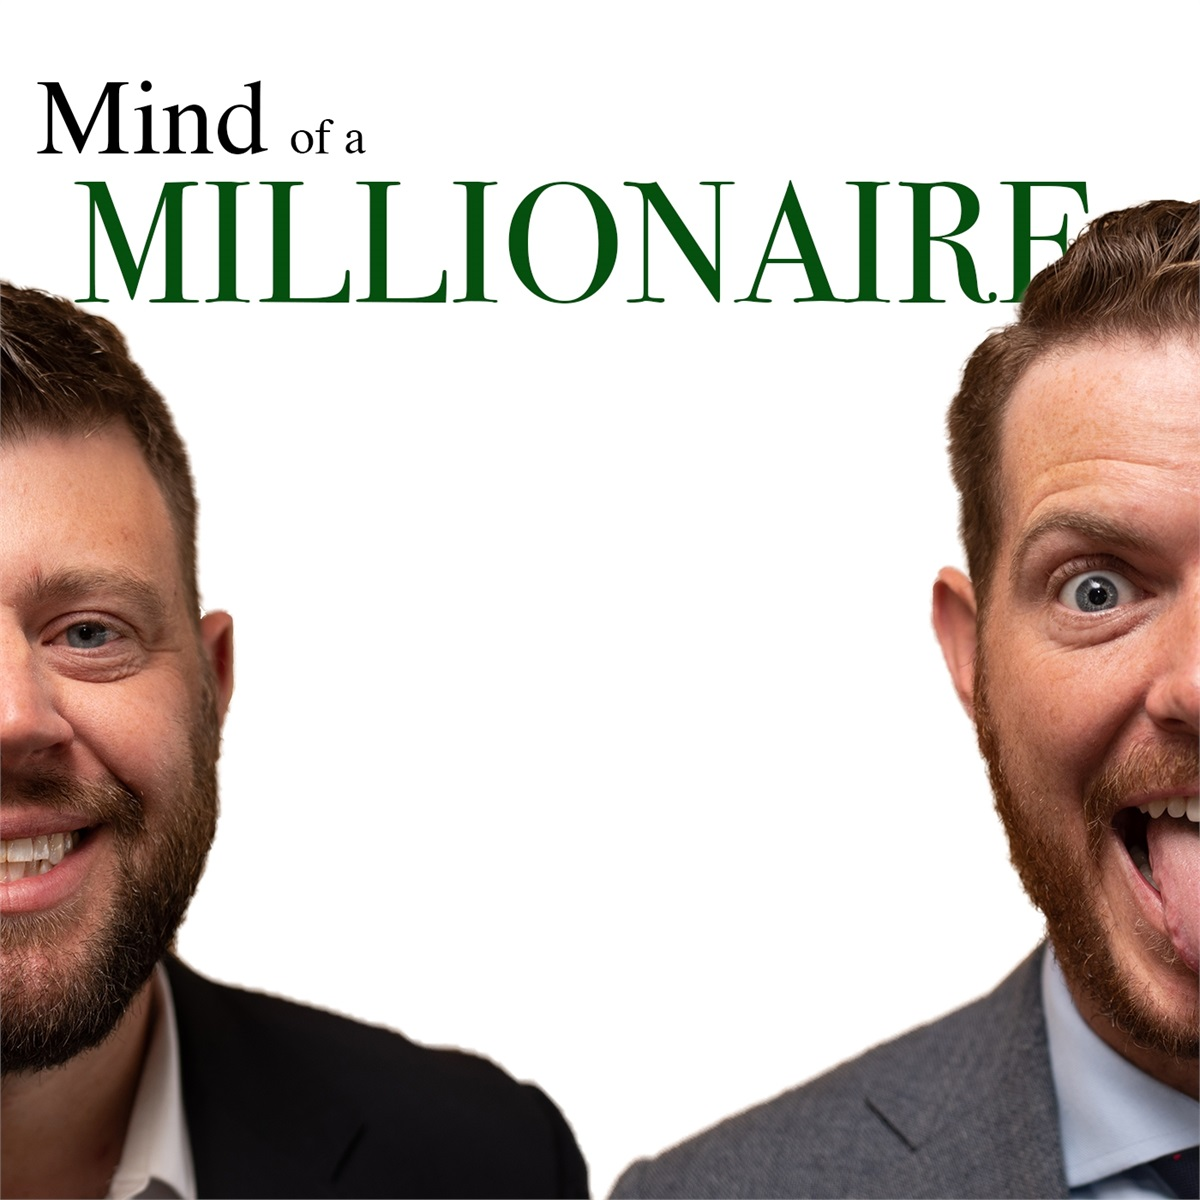 Mind of a Millionaire: What Does a Financial Advisor Actually Do?